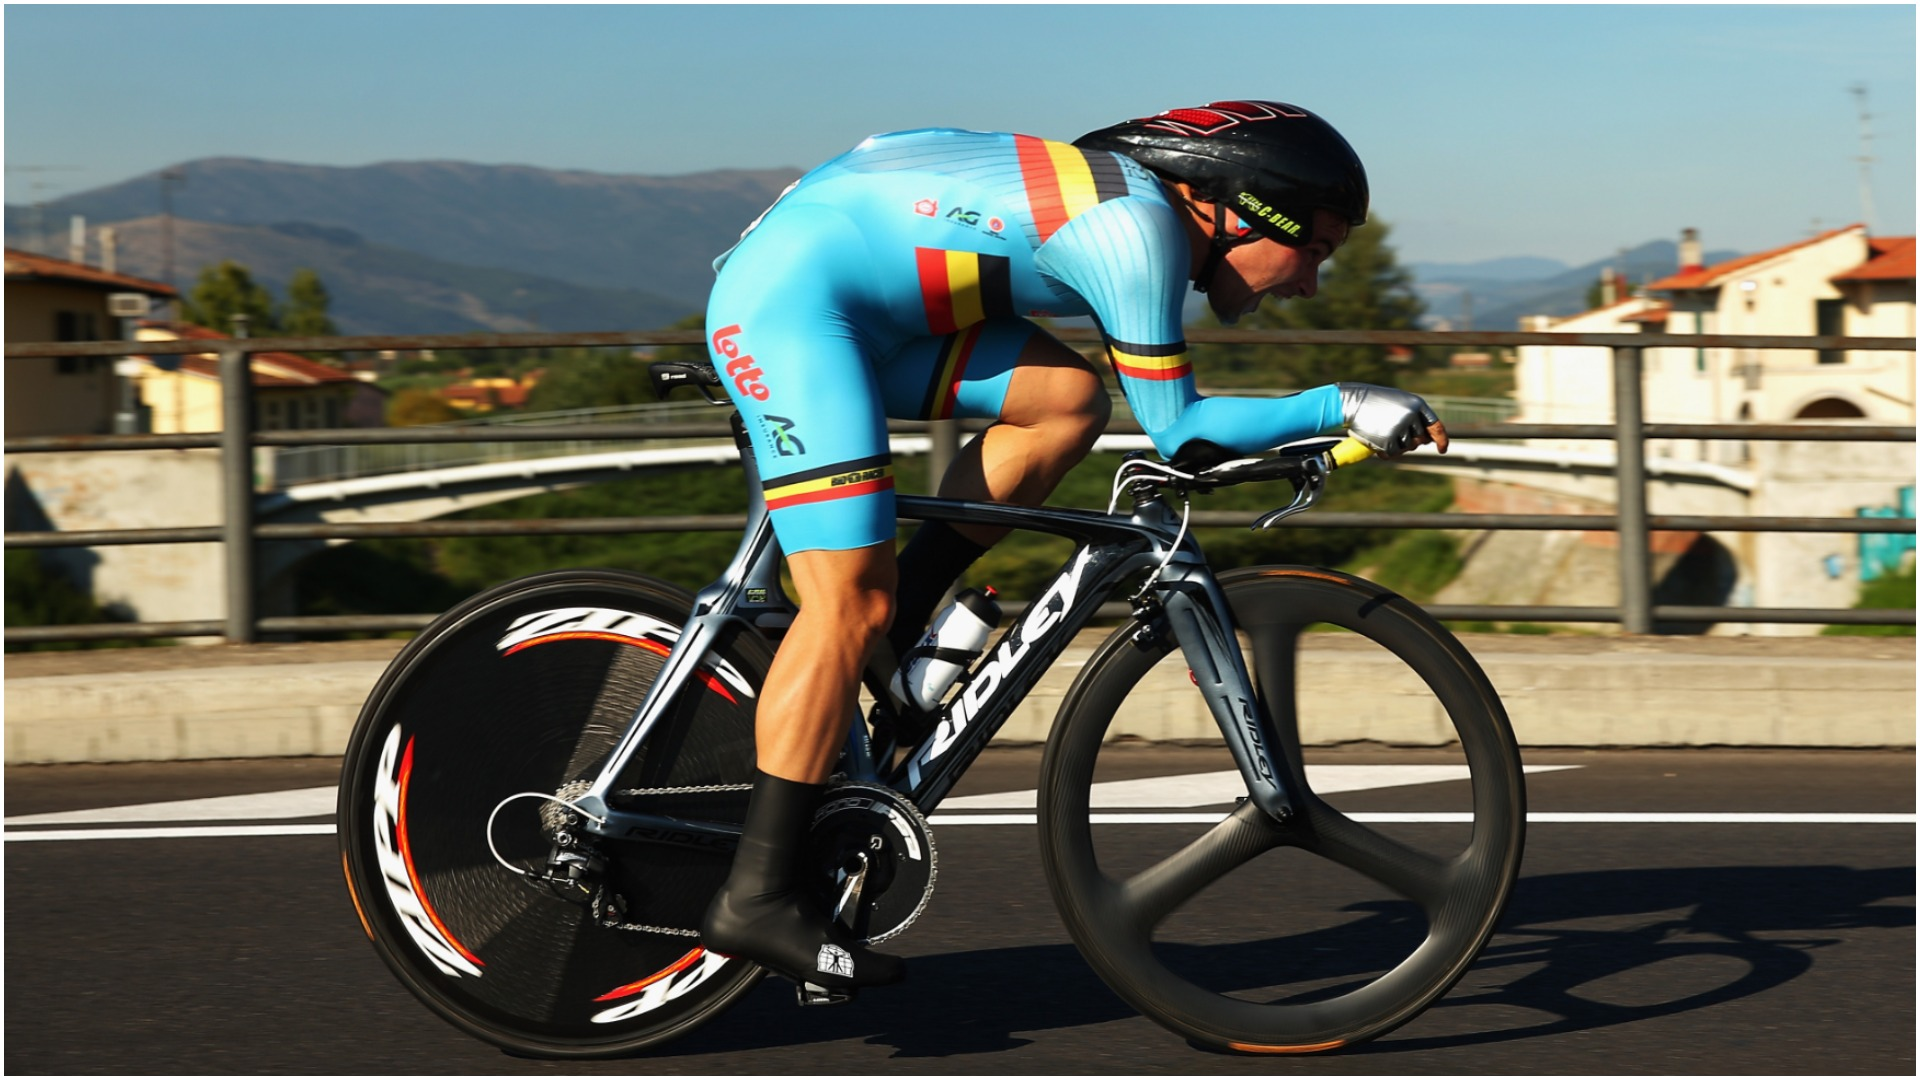 Bradley Wiggins' Hour Record, which had stood for almost four years, has been broken by Victor Campenaerts.